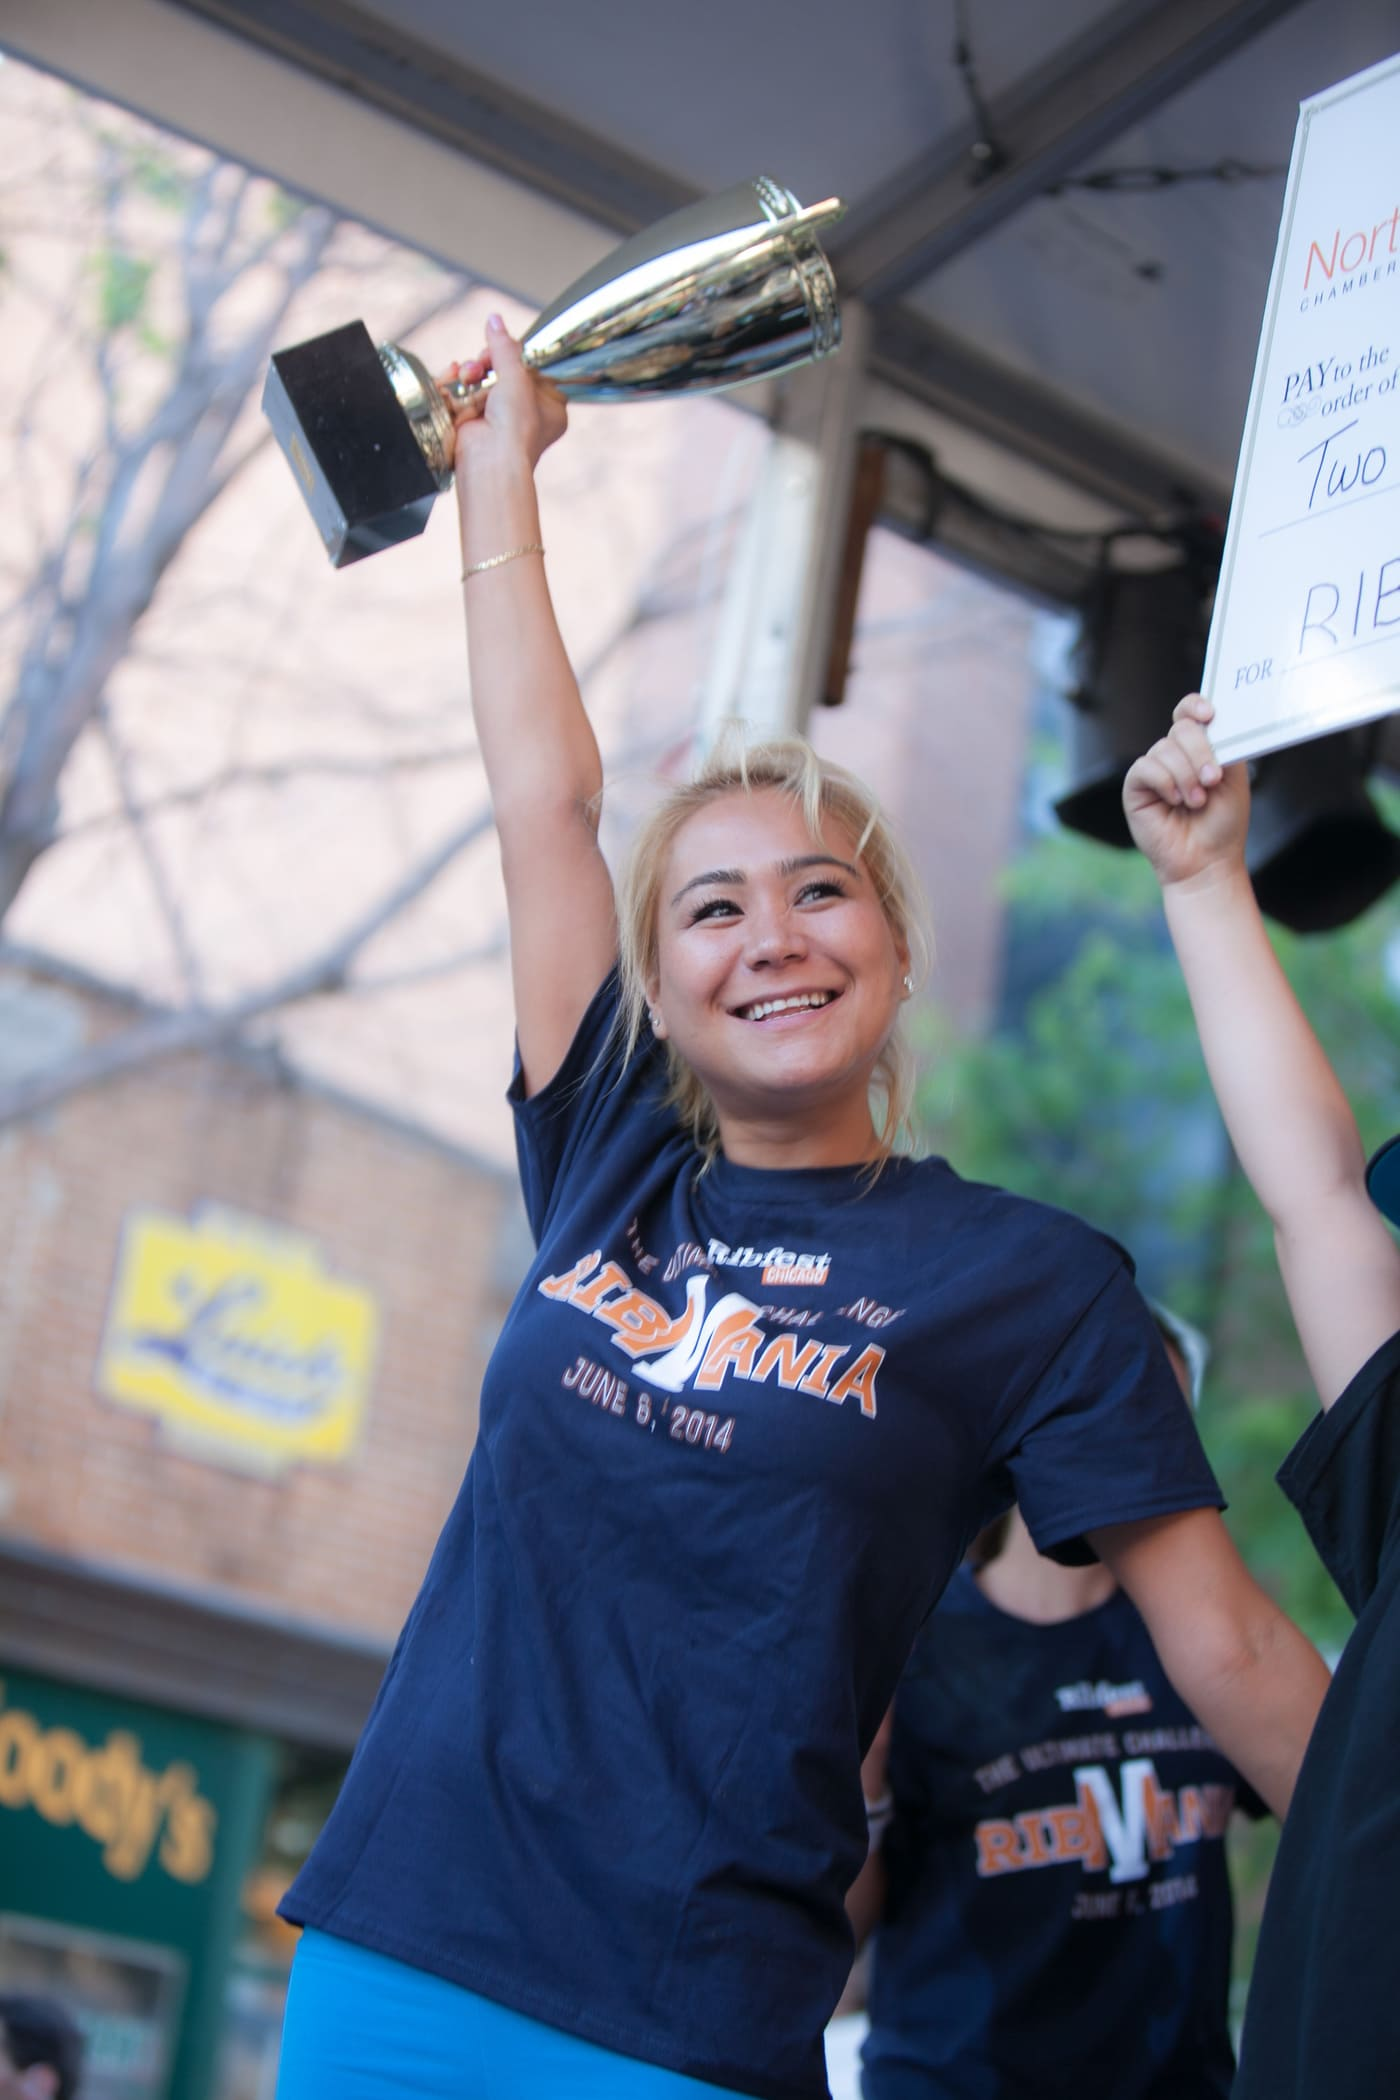 Miki Sudo wins Ribmania Chicago with 4.8 pounds of ribs at Ribmania Ribs Eating Contest at Ribfest Chicago.